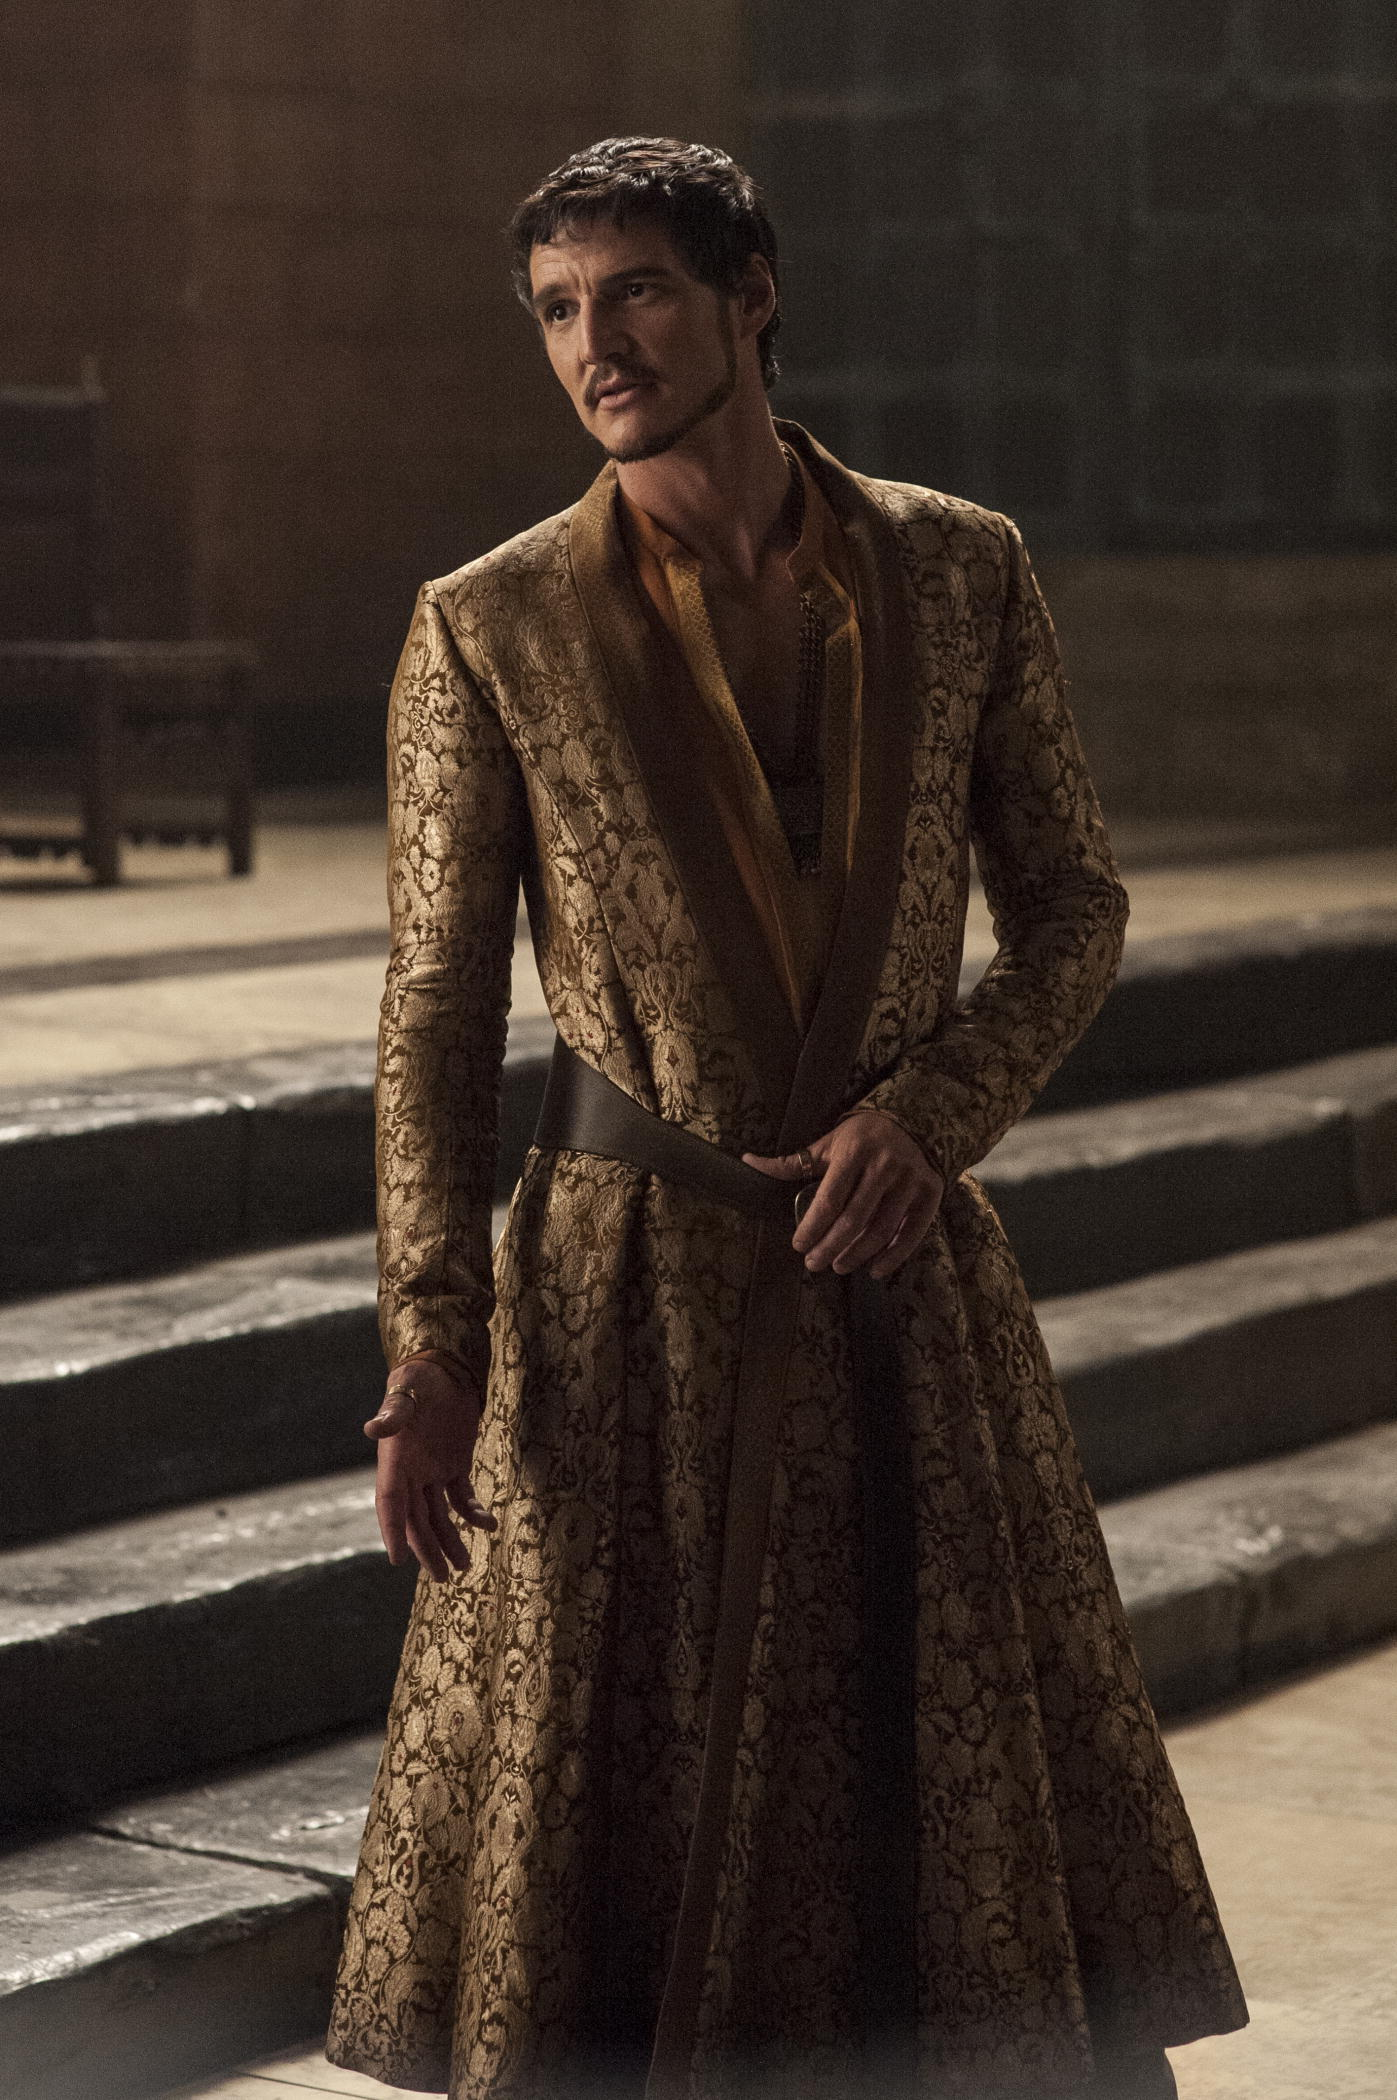 oberyn martell house martell photo 37080214 fanpop. Black Bedroom Furniture Sets. Home Design Ideas